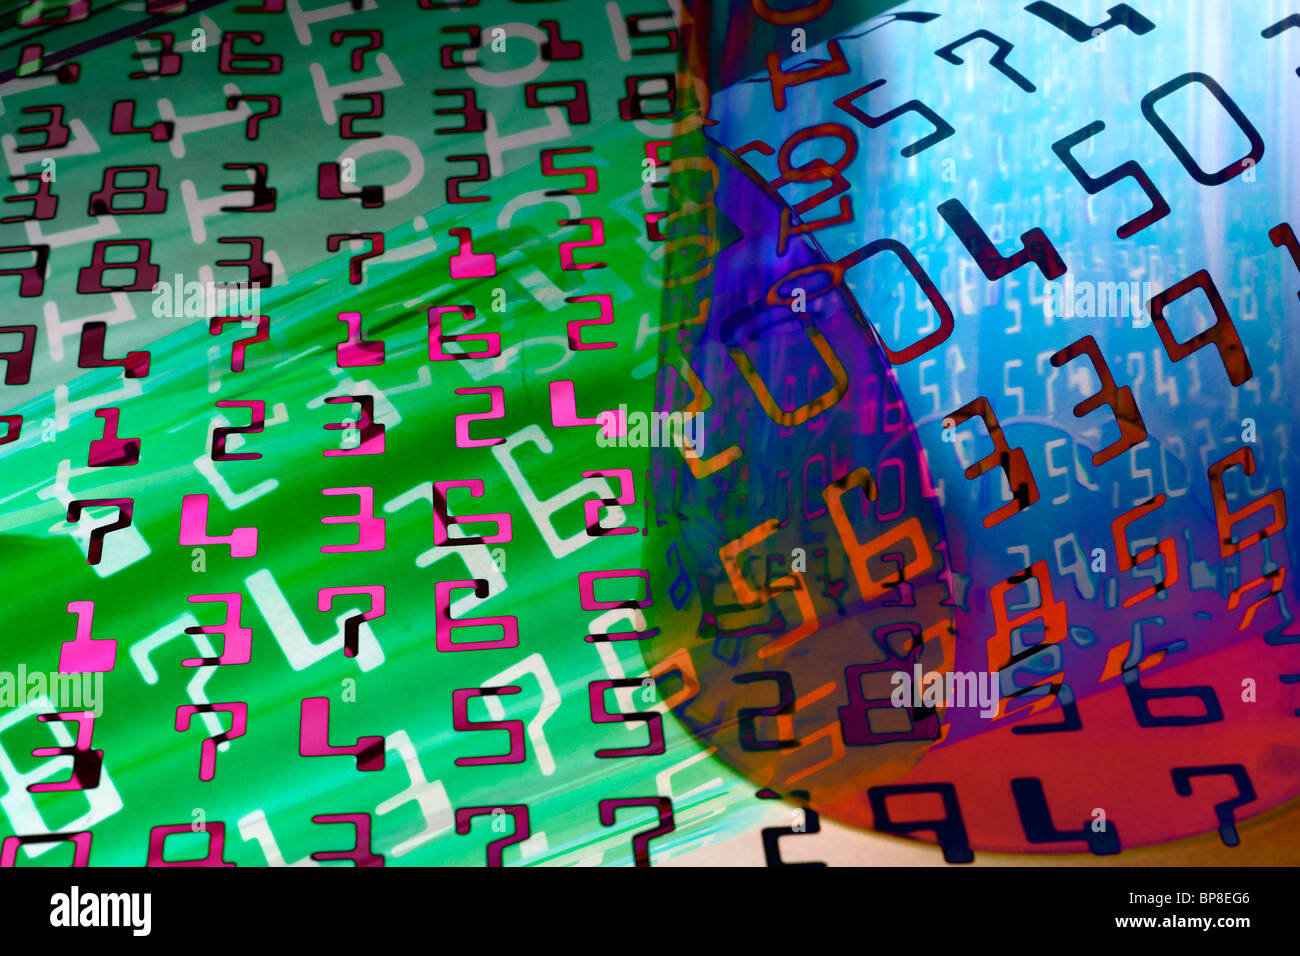 Colorful numbers abstract background - Stock Image